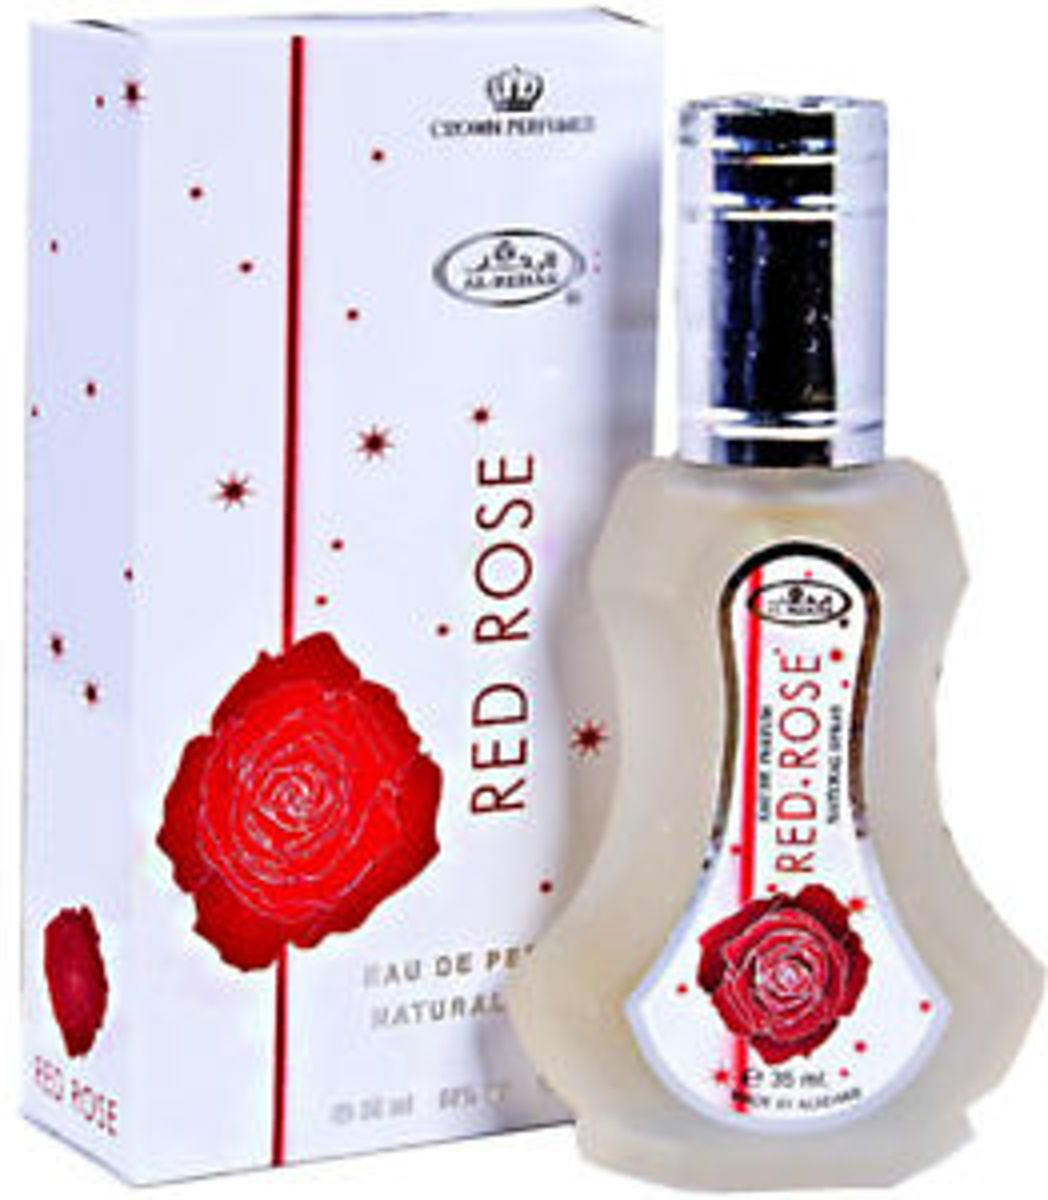 Al Rehab Red Rose Eau de Parfum 35ml by Al Rehab Vaporisateur/Spray